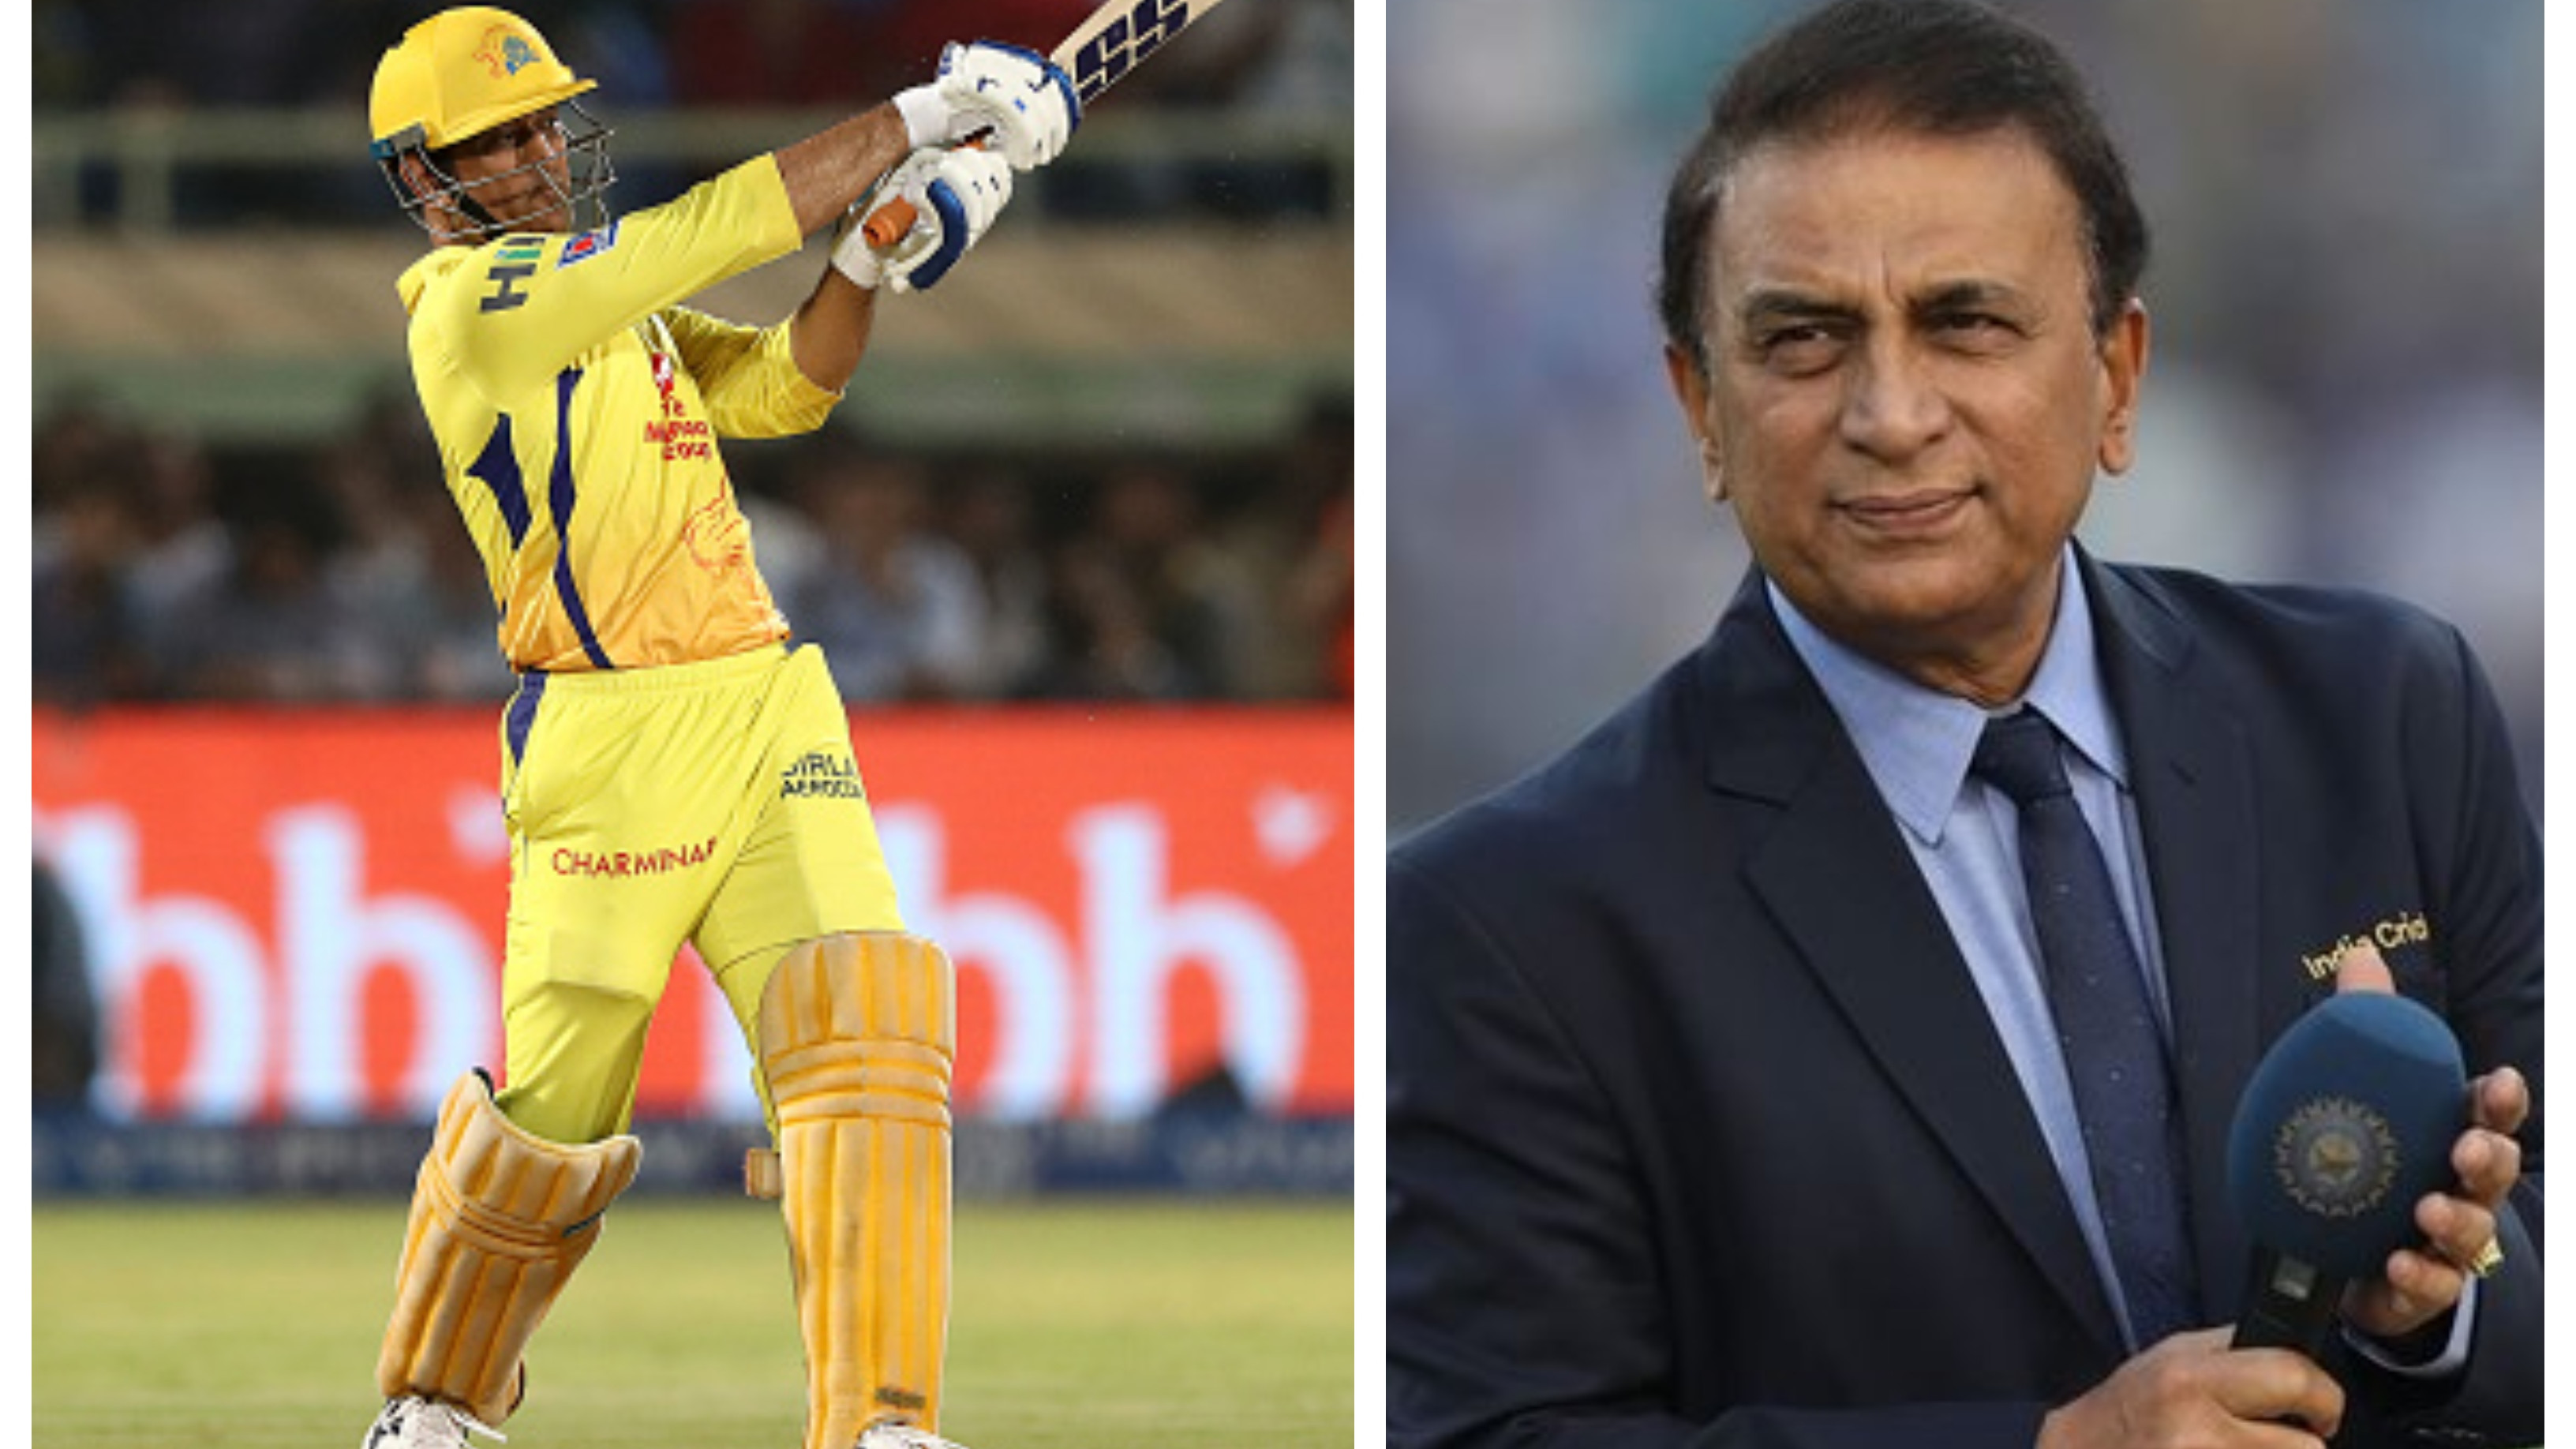 IPL 2021: Sunil Gavaskar names MS Dhoni as captain in his all-time IPL XI